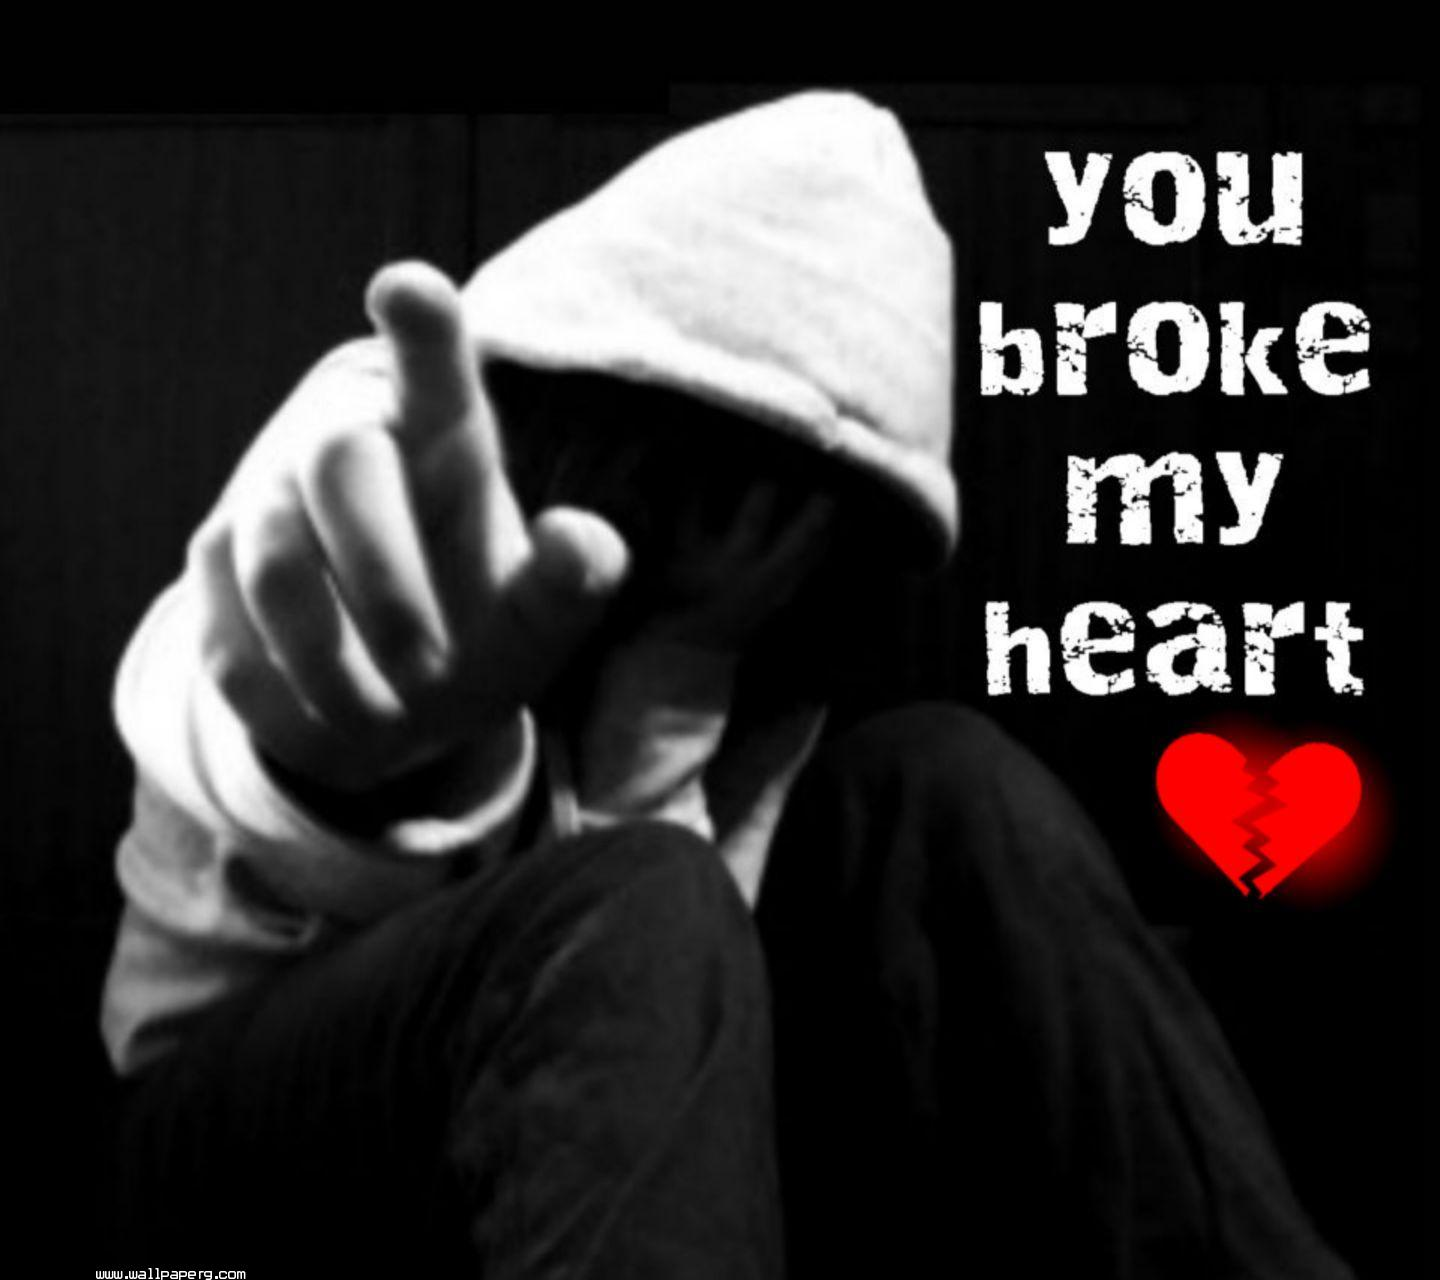 Love Hurt Boy Wallpaper : Download Broken heart(3) - Hurt wallpapers for your mobile cell phone